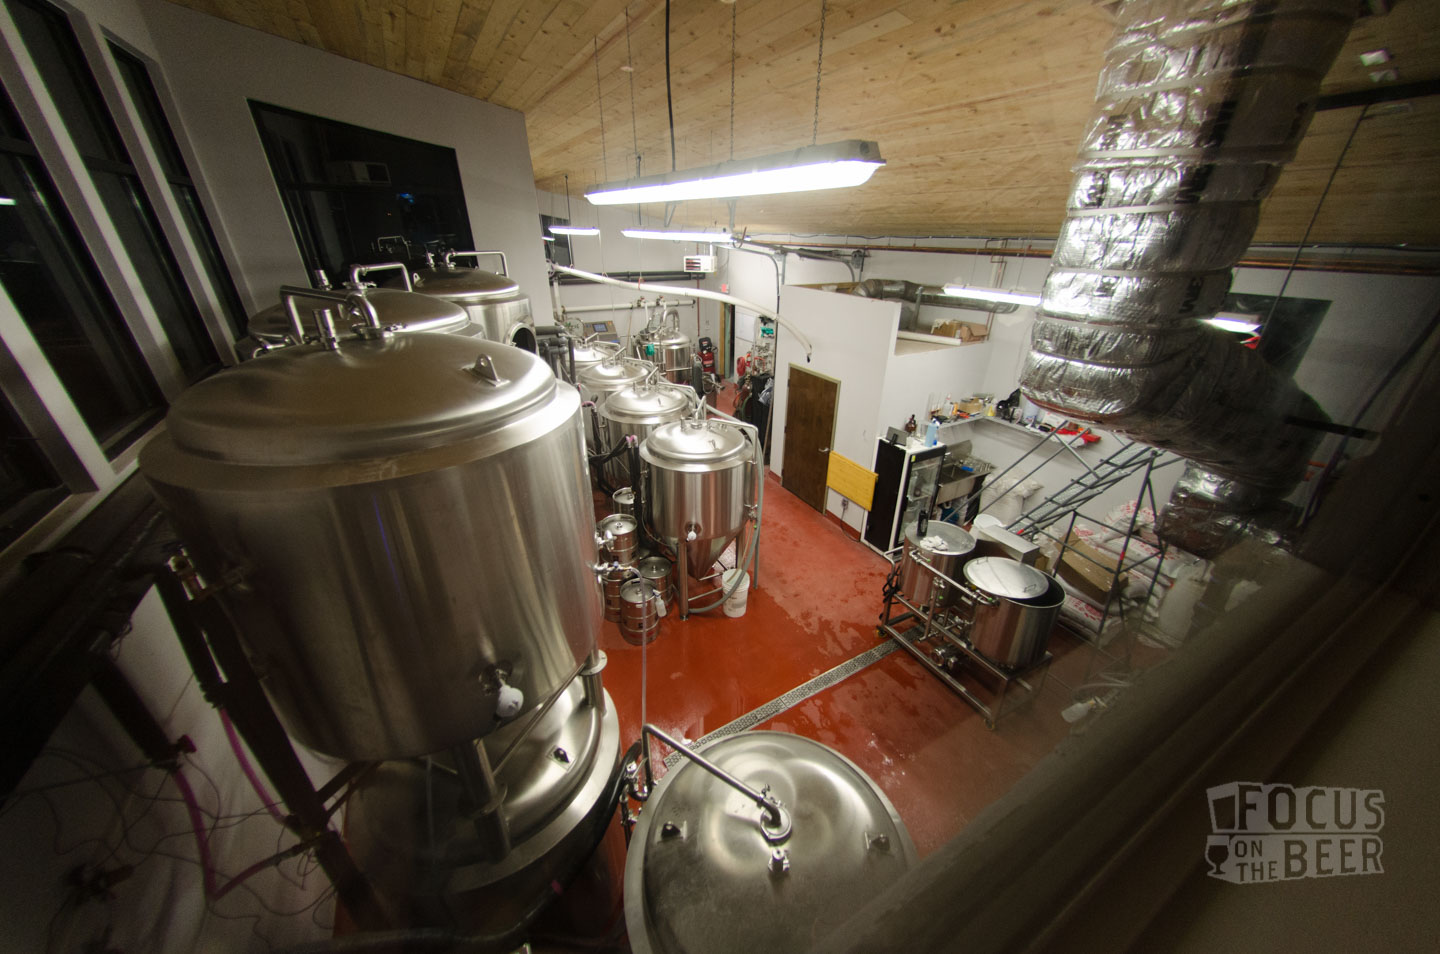 Looking down into the brew house.